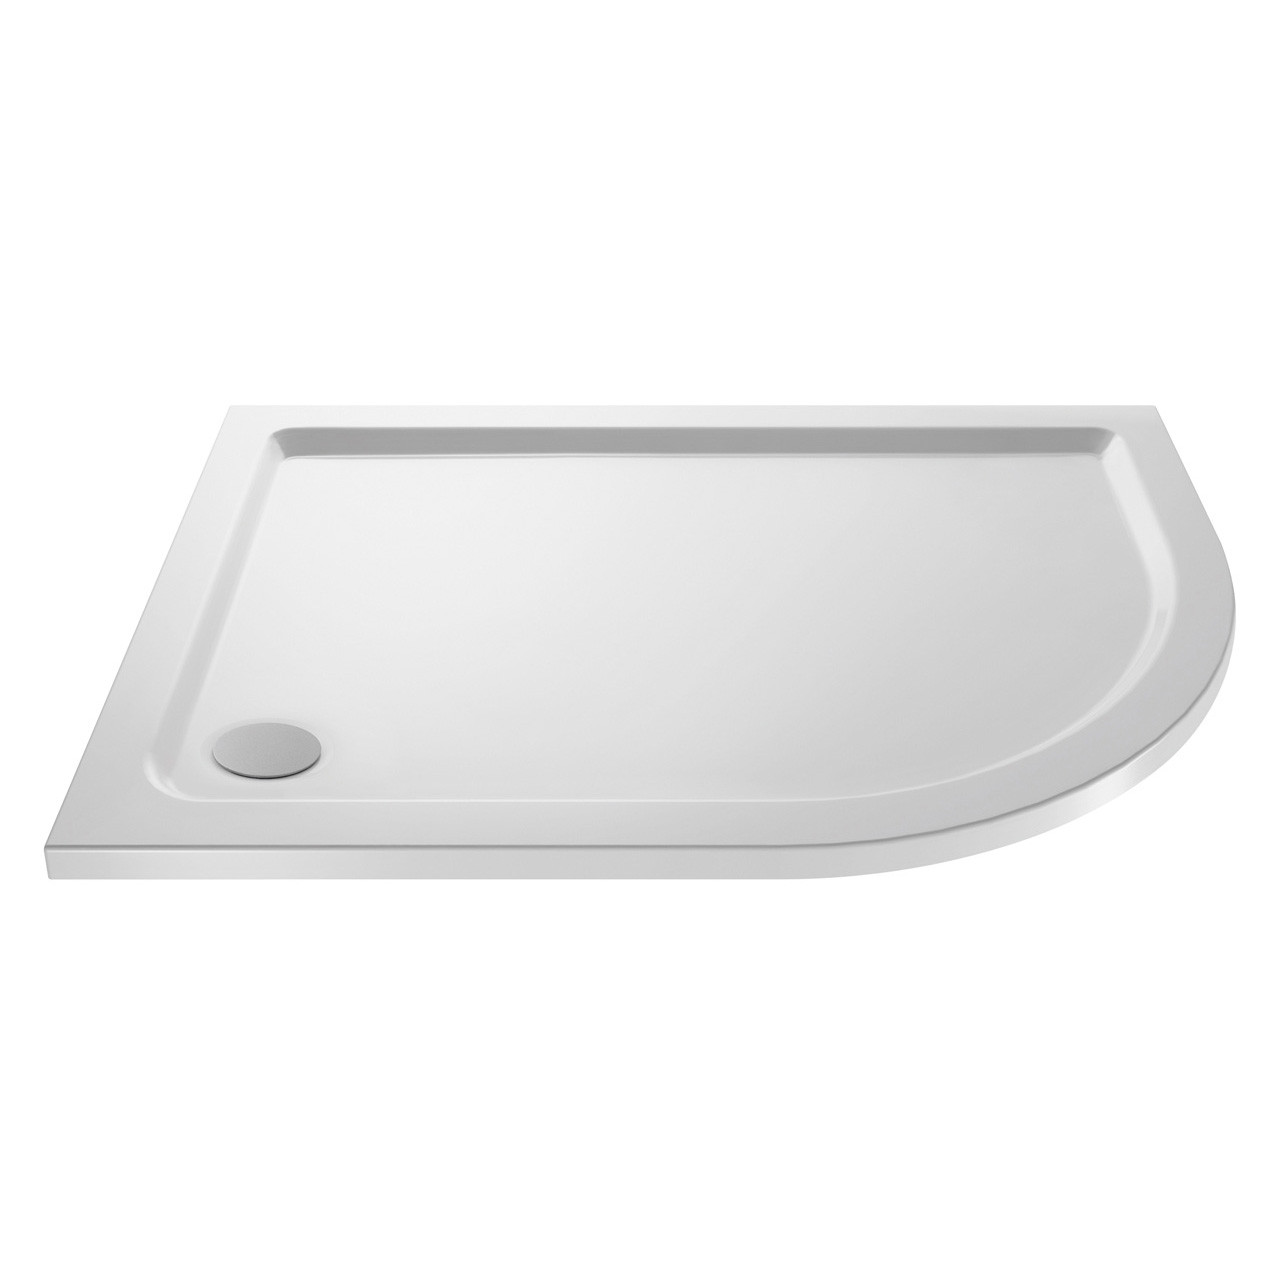 Premier Pearlstone Right Hand Offset Shower Tray 900mm x 760mm x 40mm - NTP102